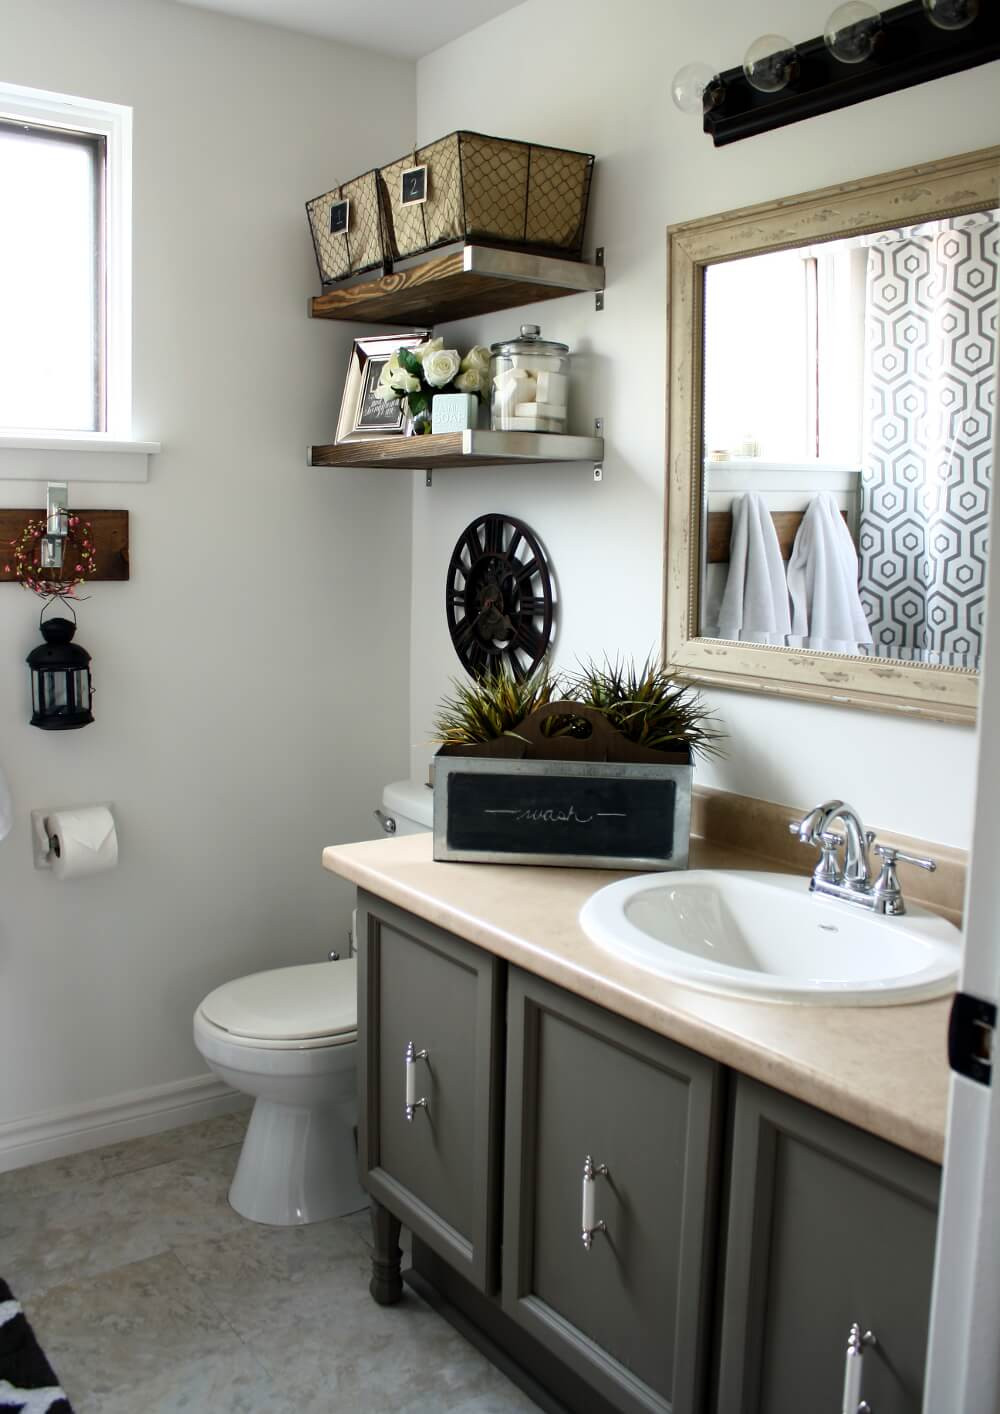 Compact Bathroom Design  32 Best Small Bathroom Design Ideas and Decorations for 2020